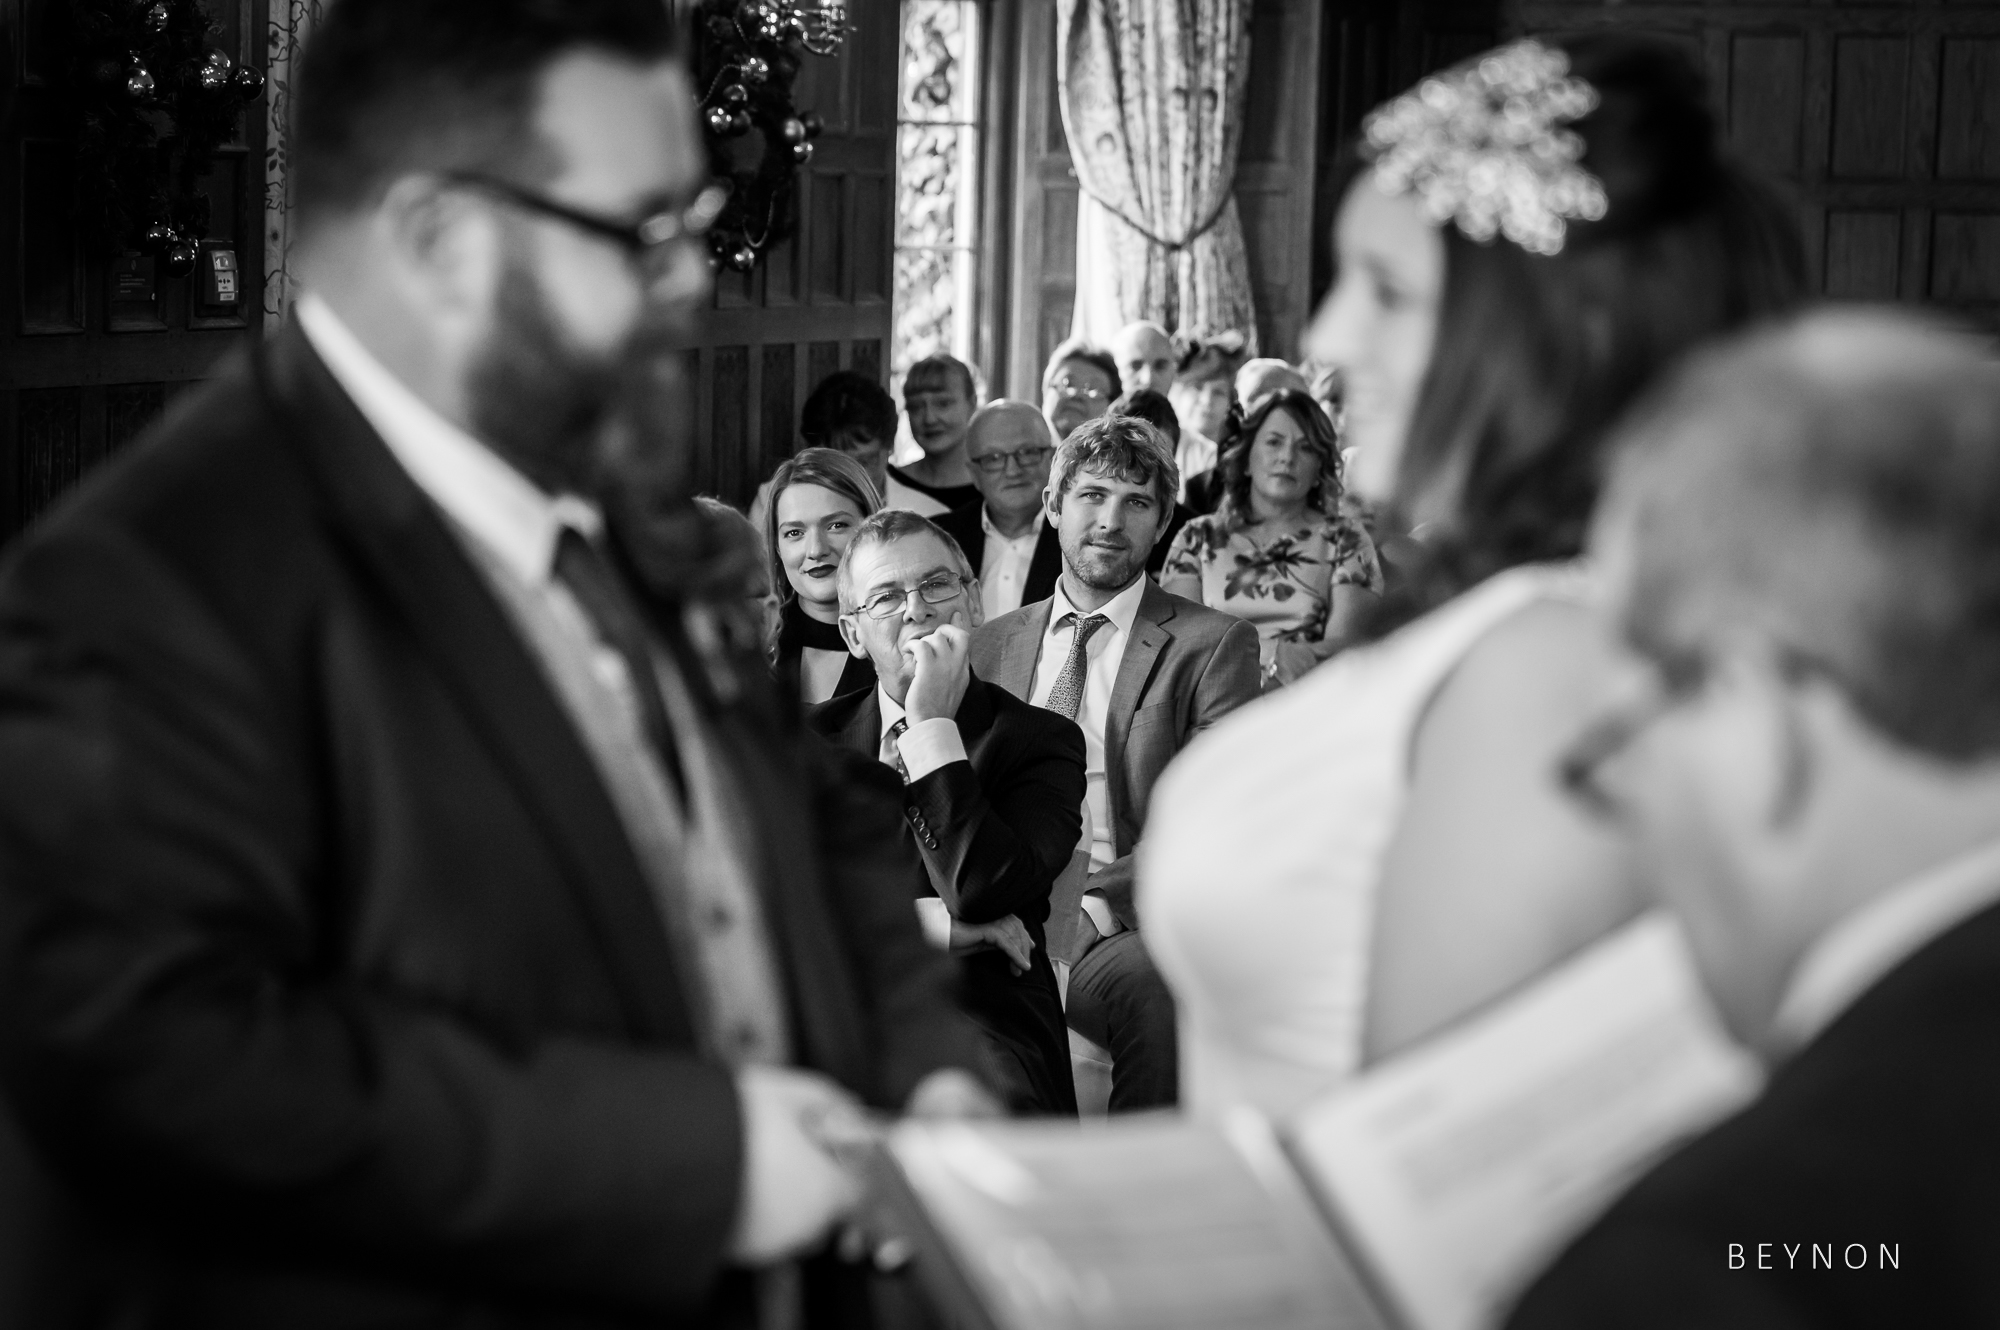 Black and White image of the guests